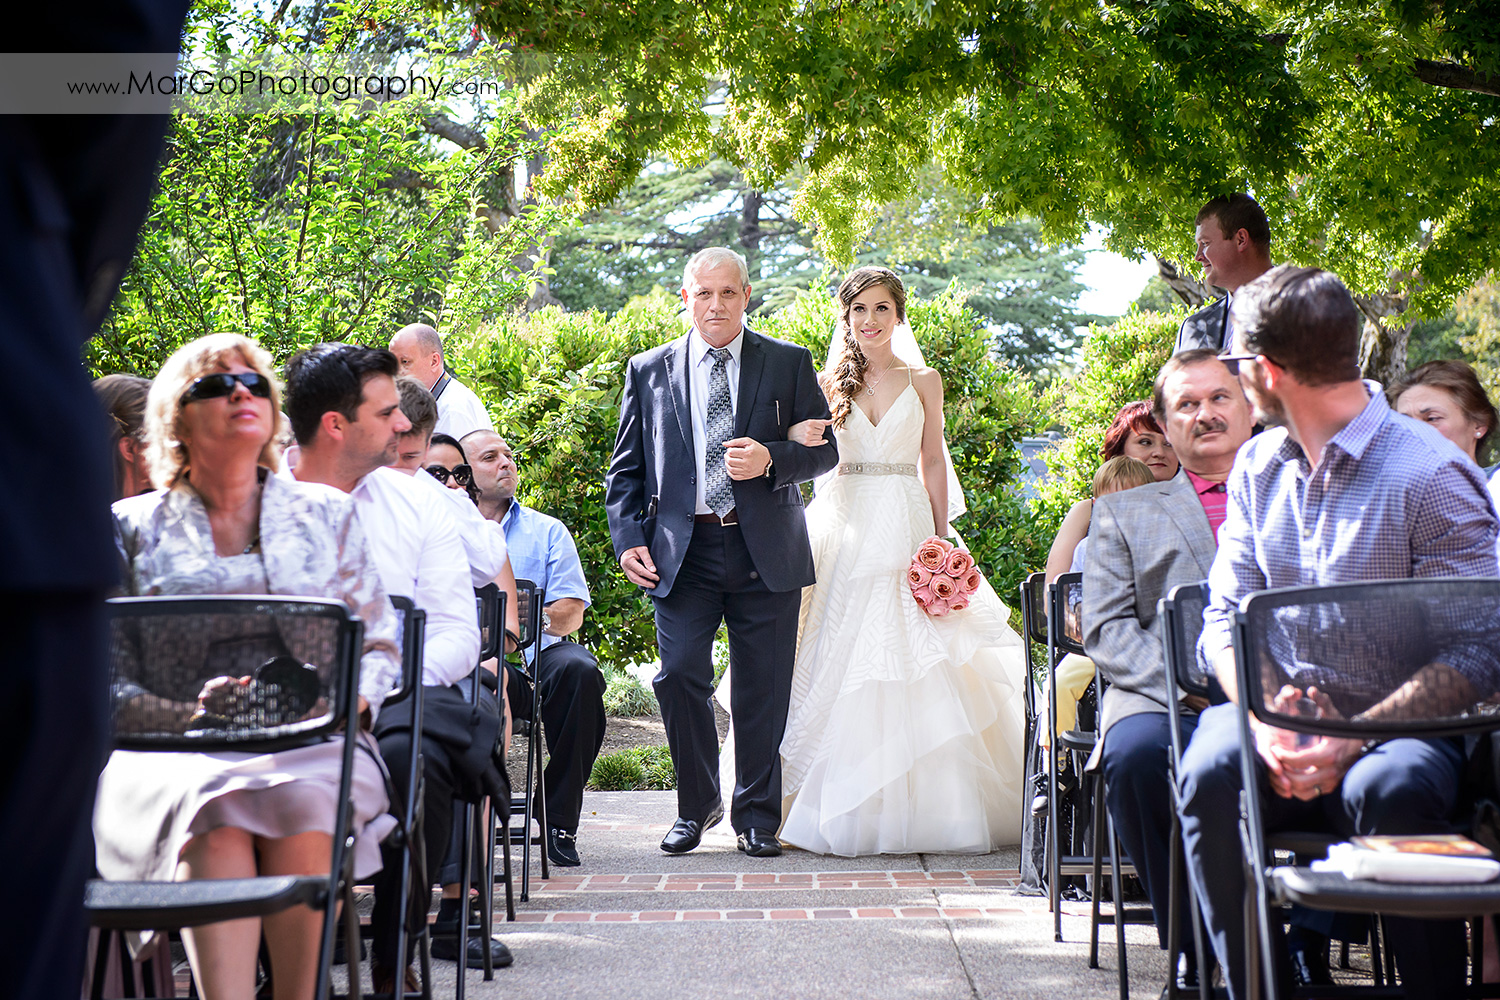 bride walking down the aisle with her father during wedding ceremony at Saratoga Foothill Club